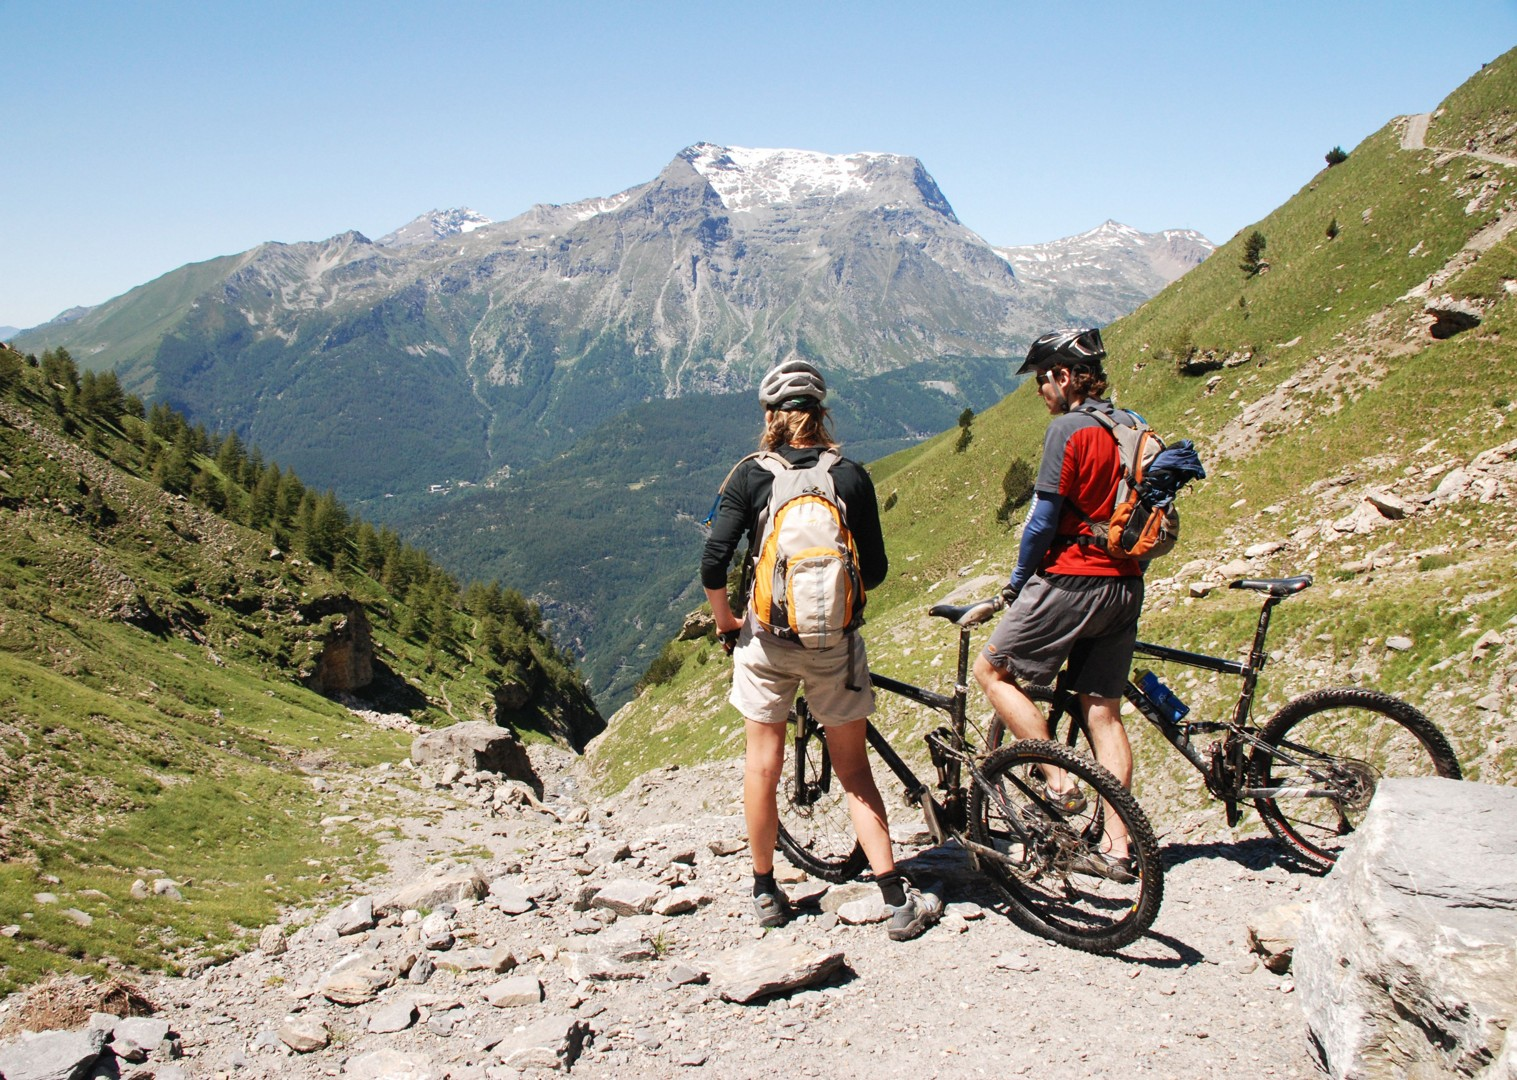 guided-mountain-bike-holiday-italy-and-france-alpine-adventure.JPG - Italy and France - Alpine Adventure - Mountain Biking